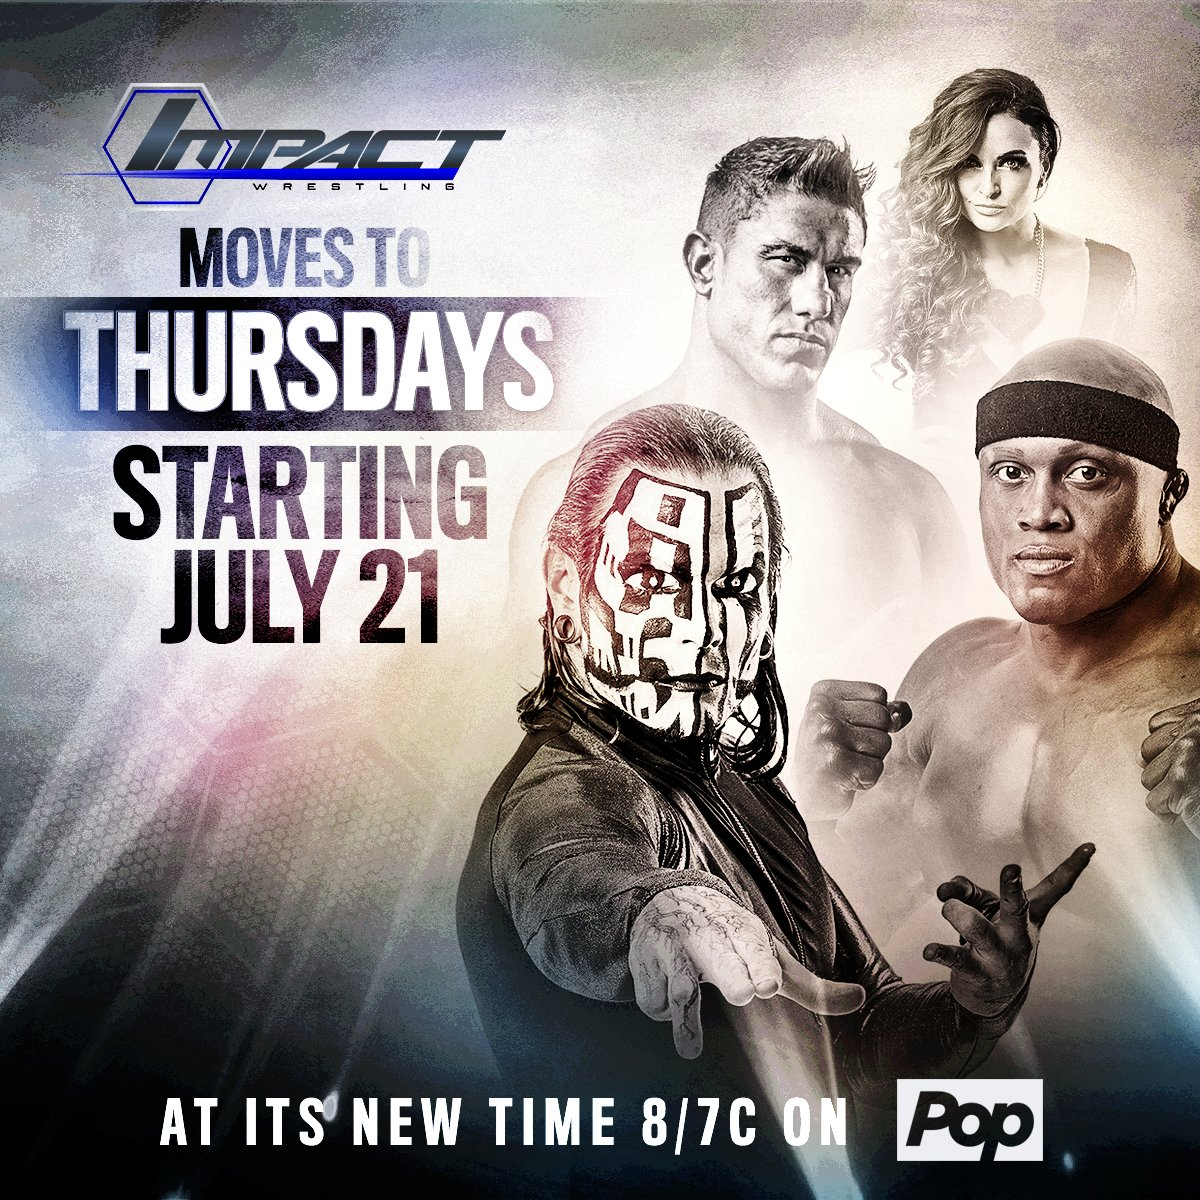 BREAKING NEWS: @IMPACTWRESTLING is moving home to THURSDAY NIGHTS at a NEW TIME 8/7c starting JULY 21 #IMPACTonPOP https://t.co/8R4eAvLTXB